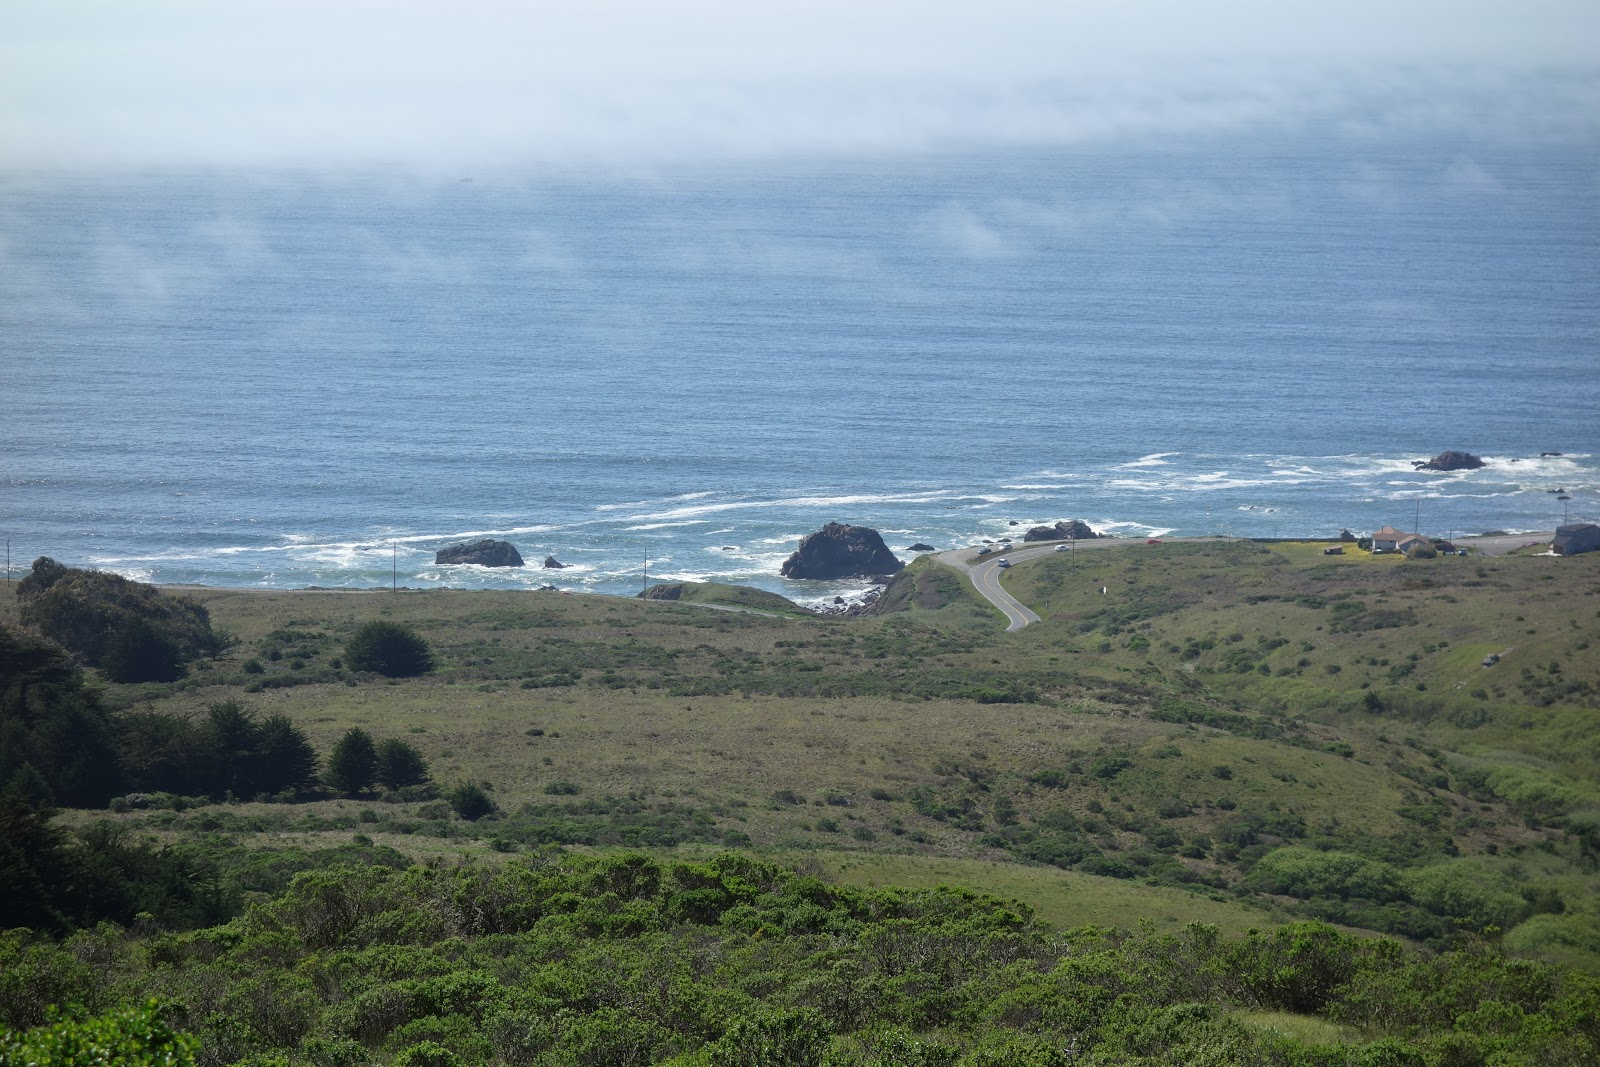 View while bicycling up Coleman Valley Road of Pacific Ocean and Hwy 1.